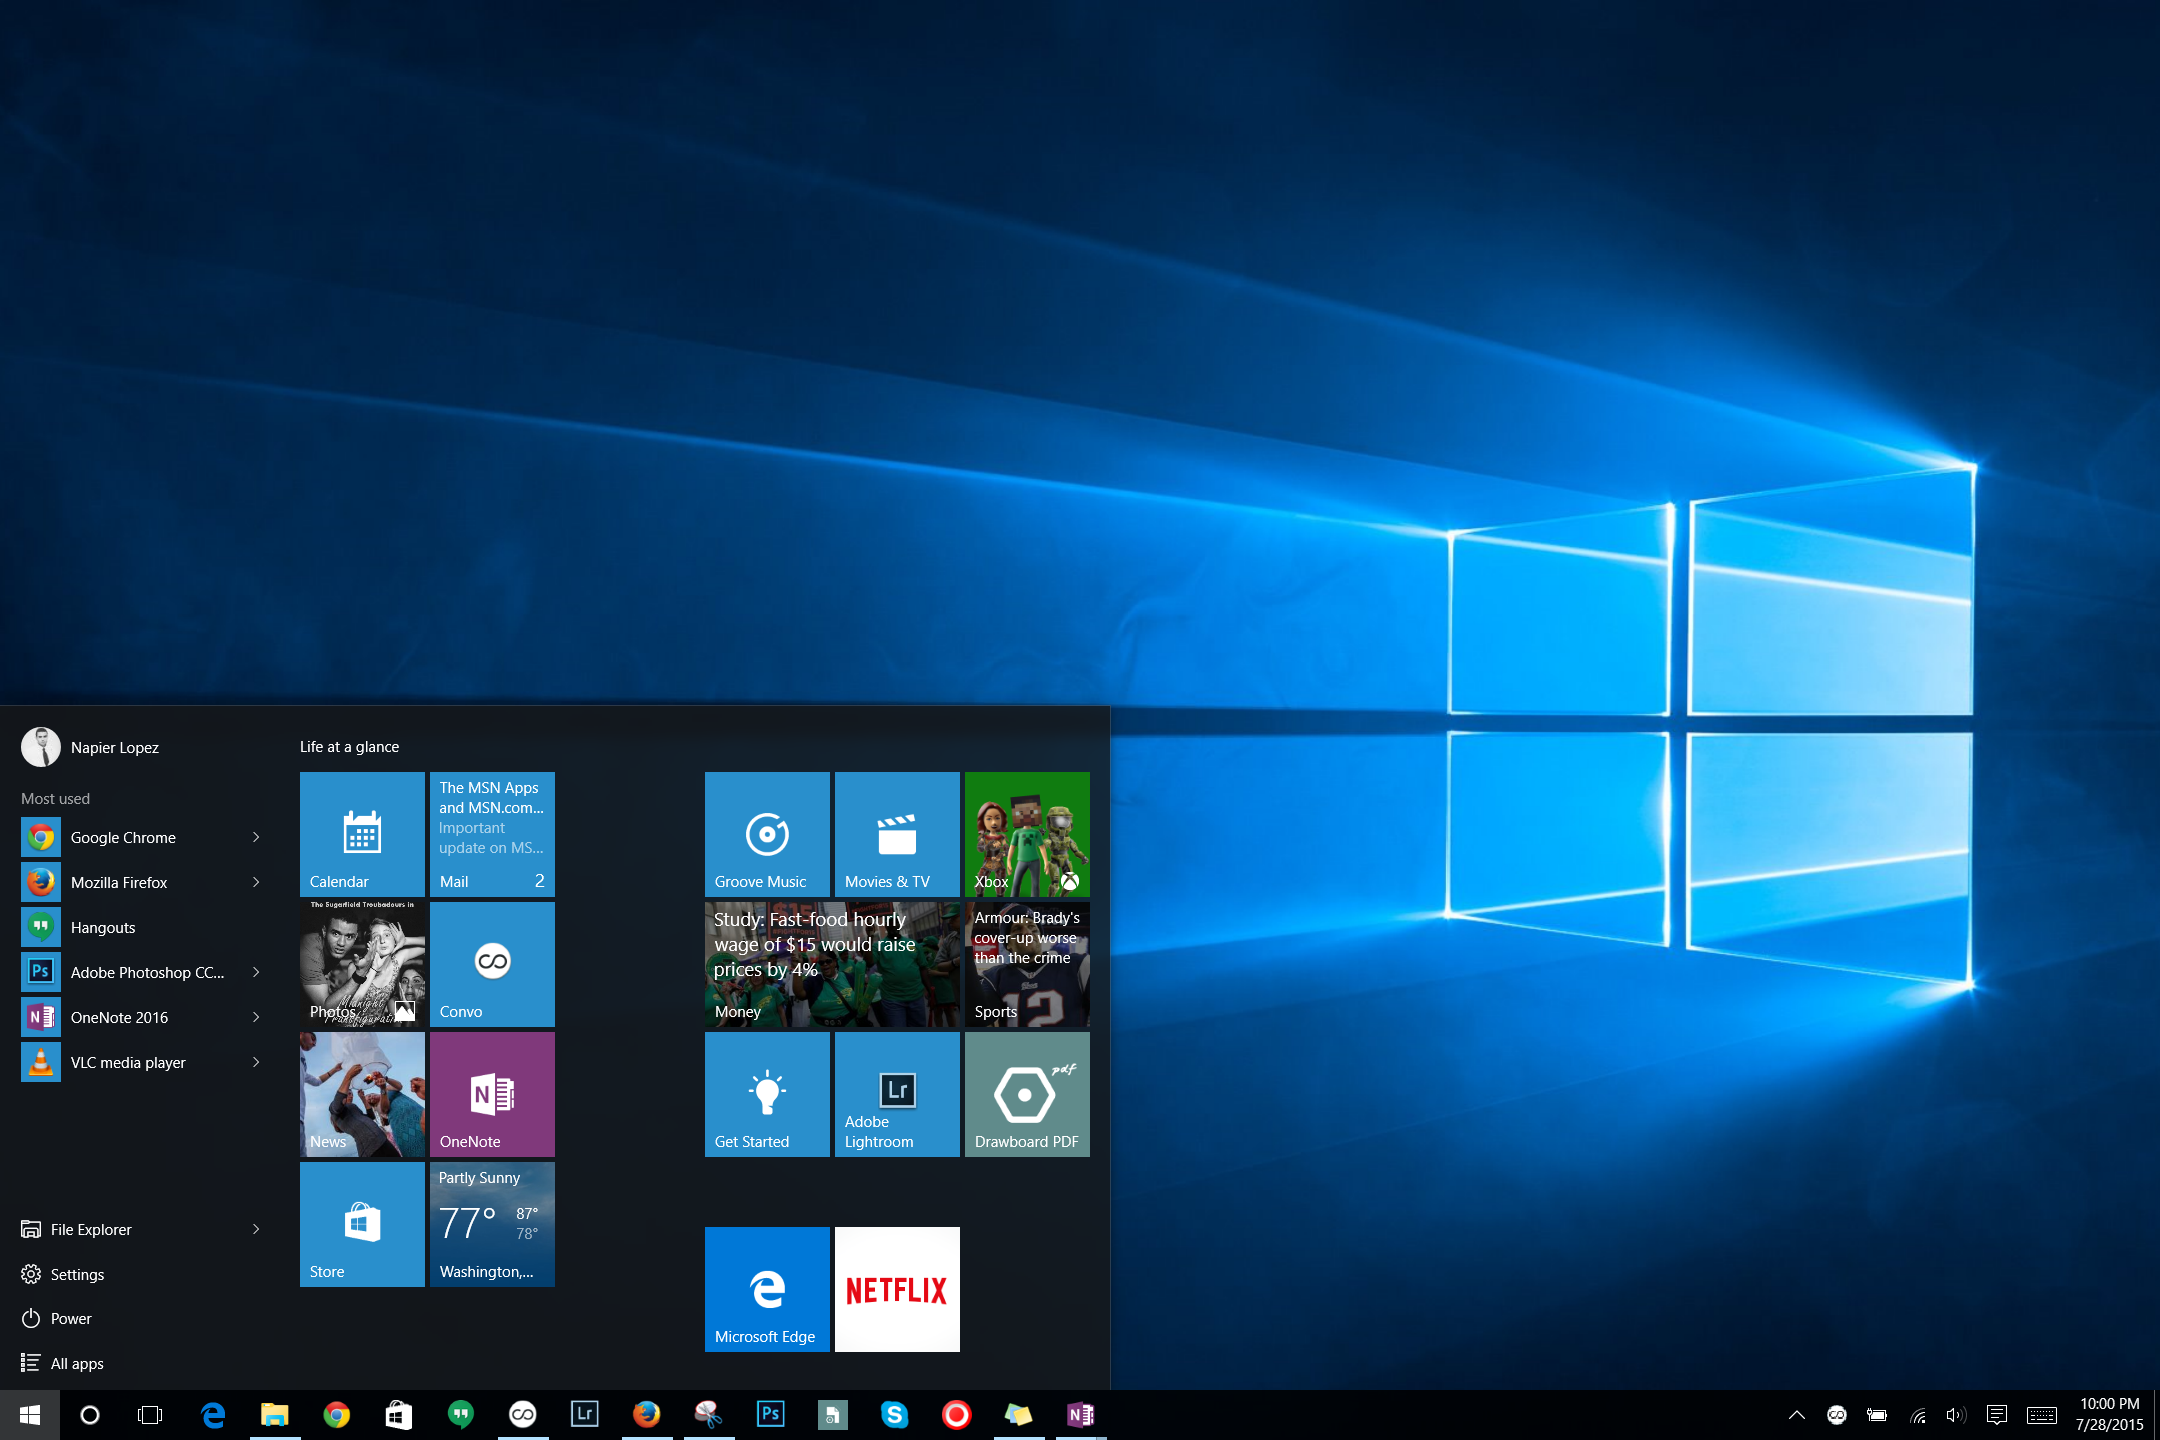 People are embracing Windows 10 at an insane rate